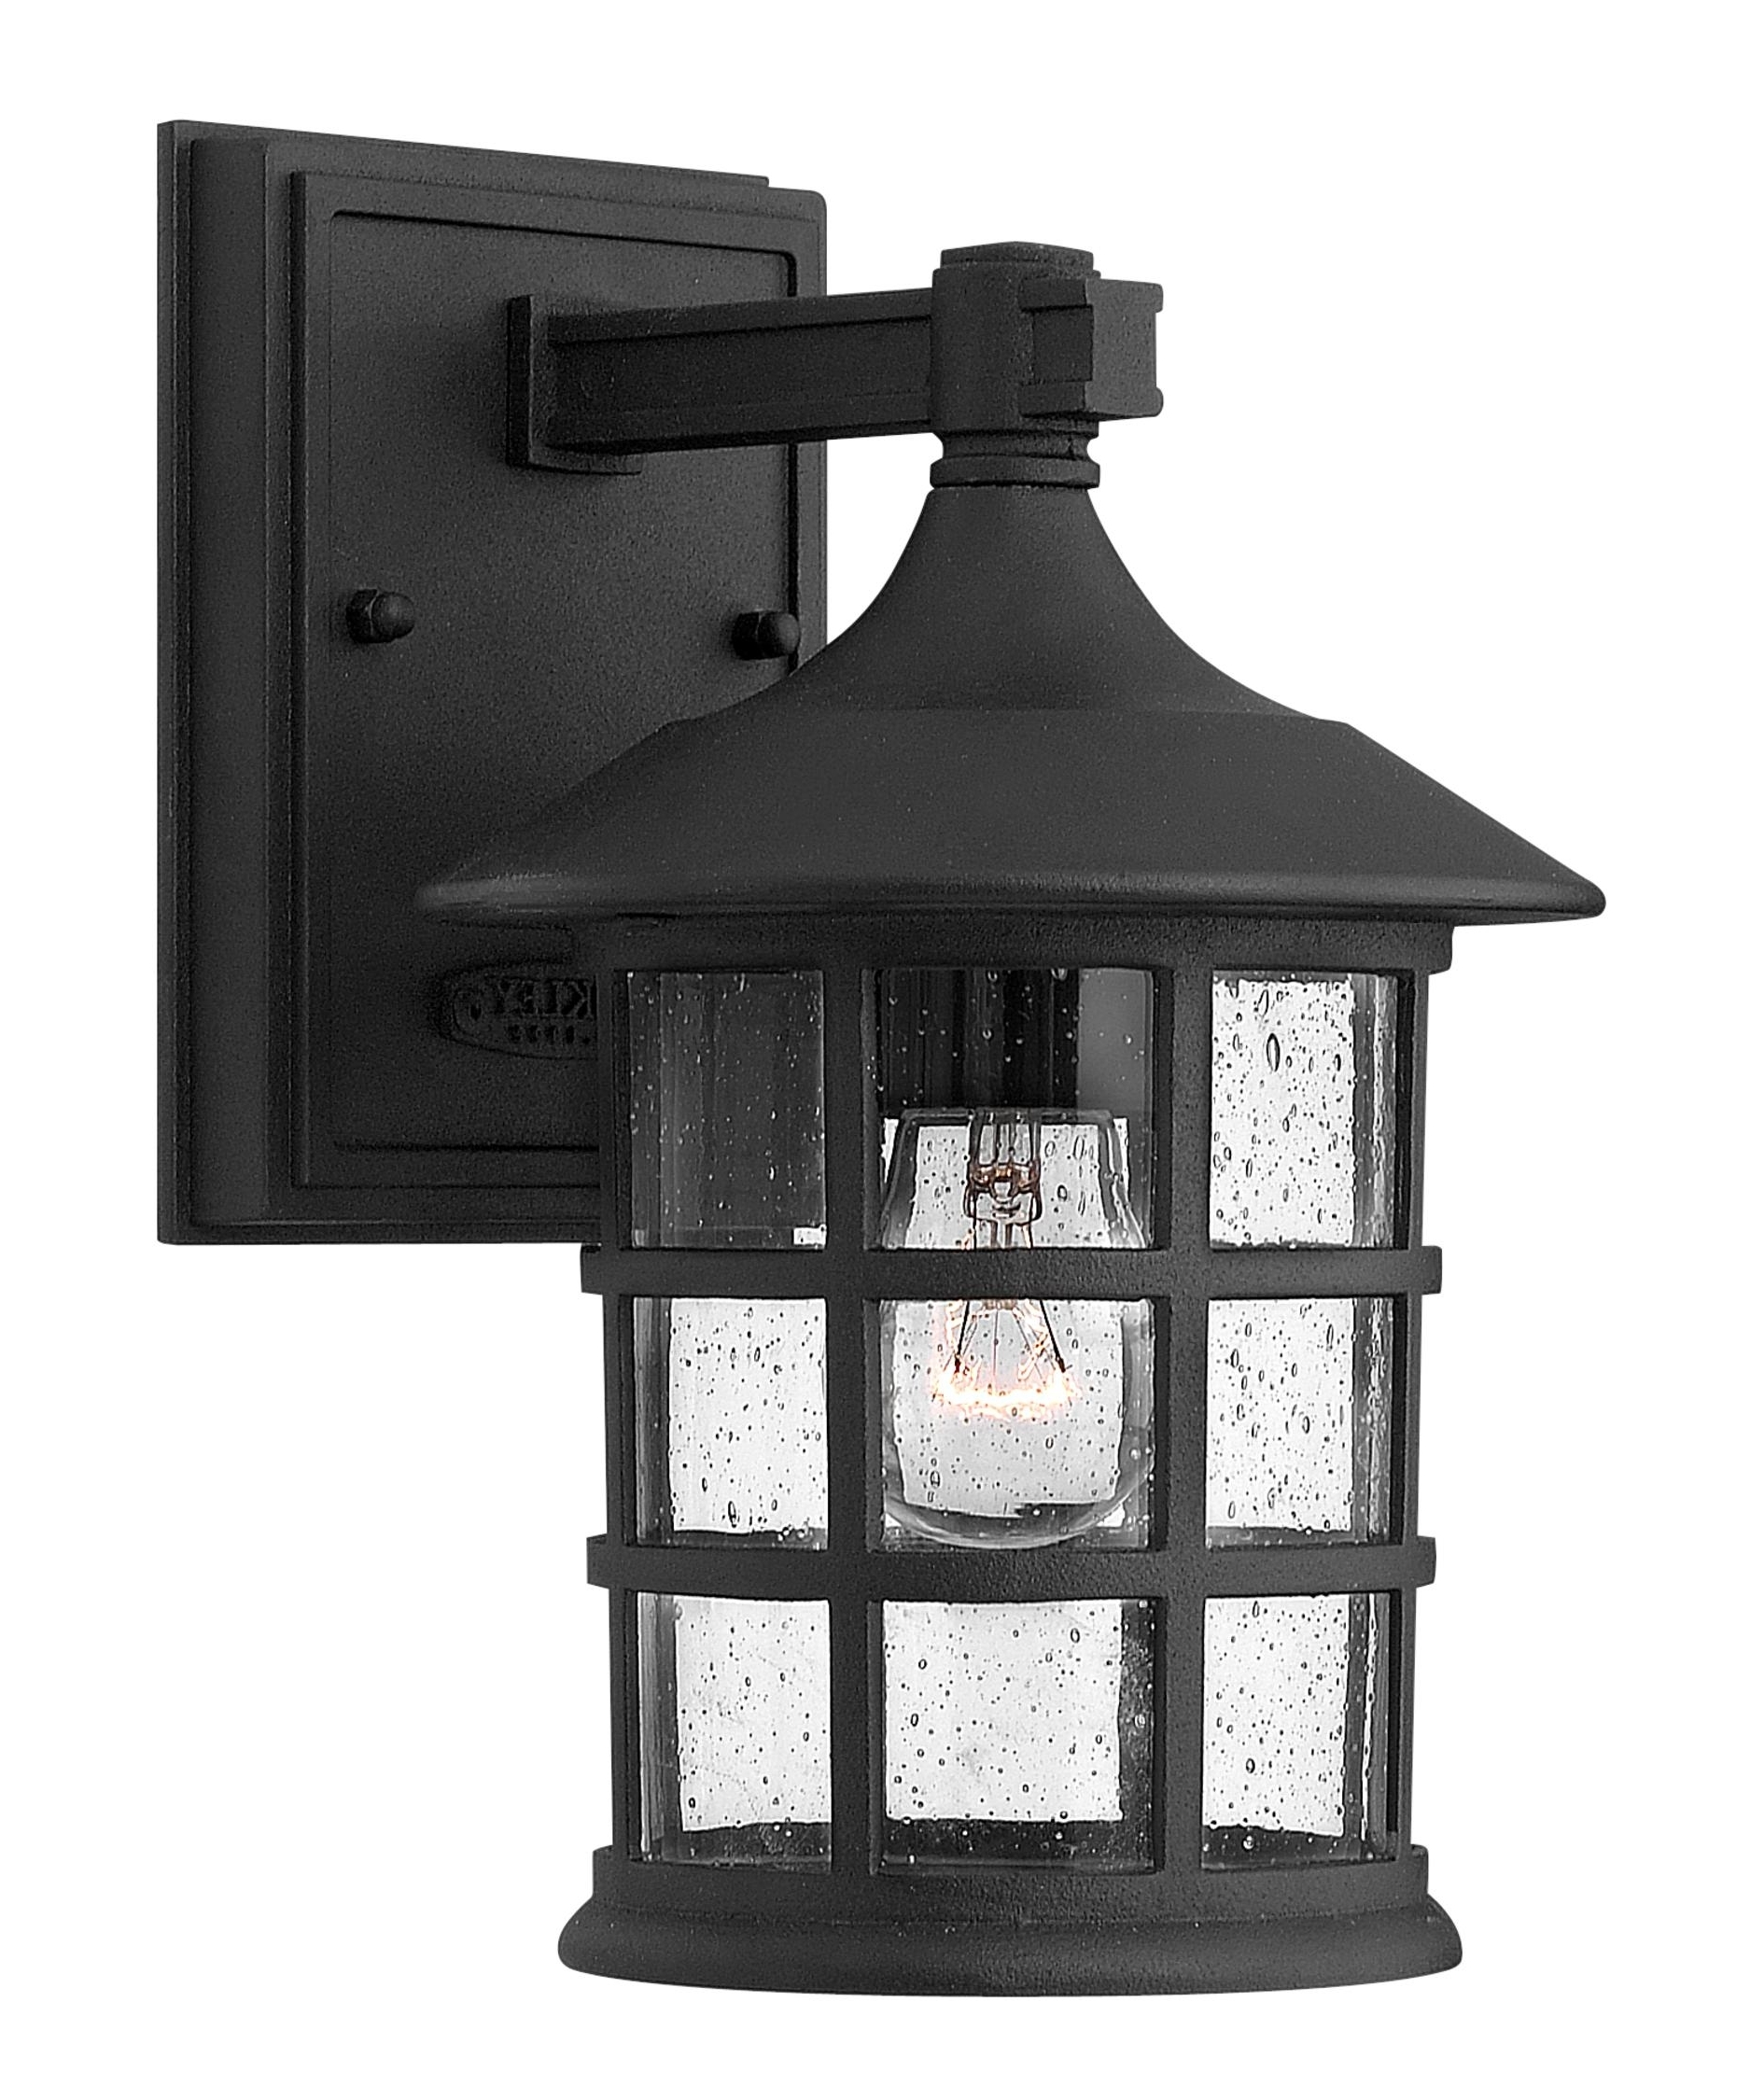 Outdoor Wall Lighting Intended For 2019 Hinkley Lighting 1800 Freeport 6 Inch Wide 1 Light Outdoor Wall (View 12 of 20)